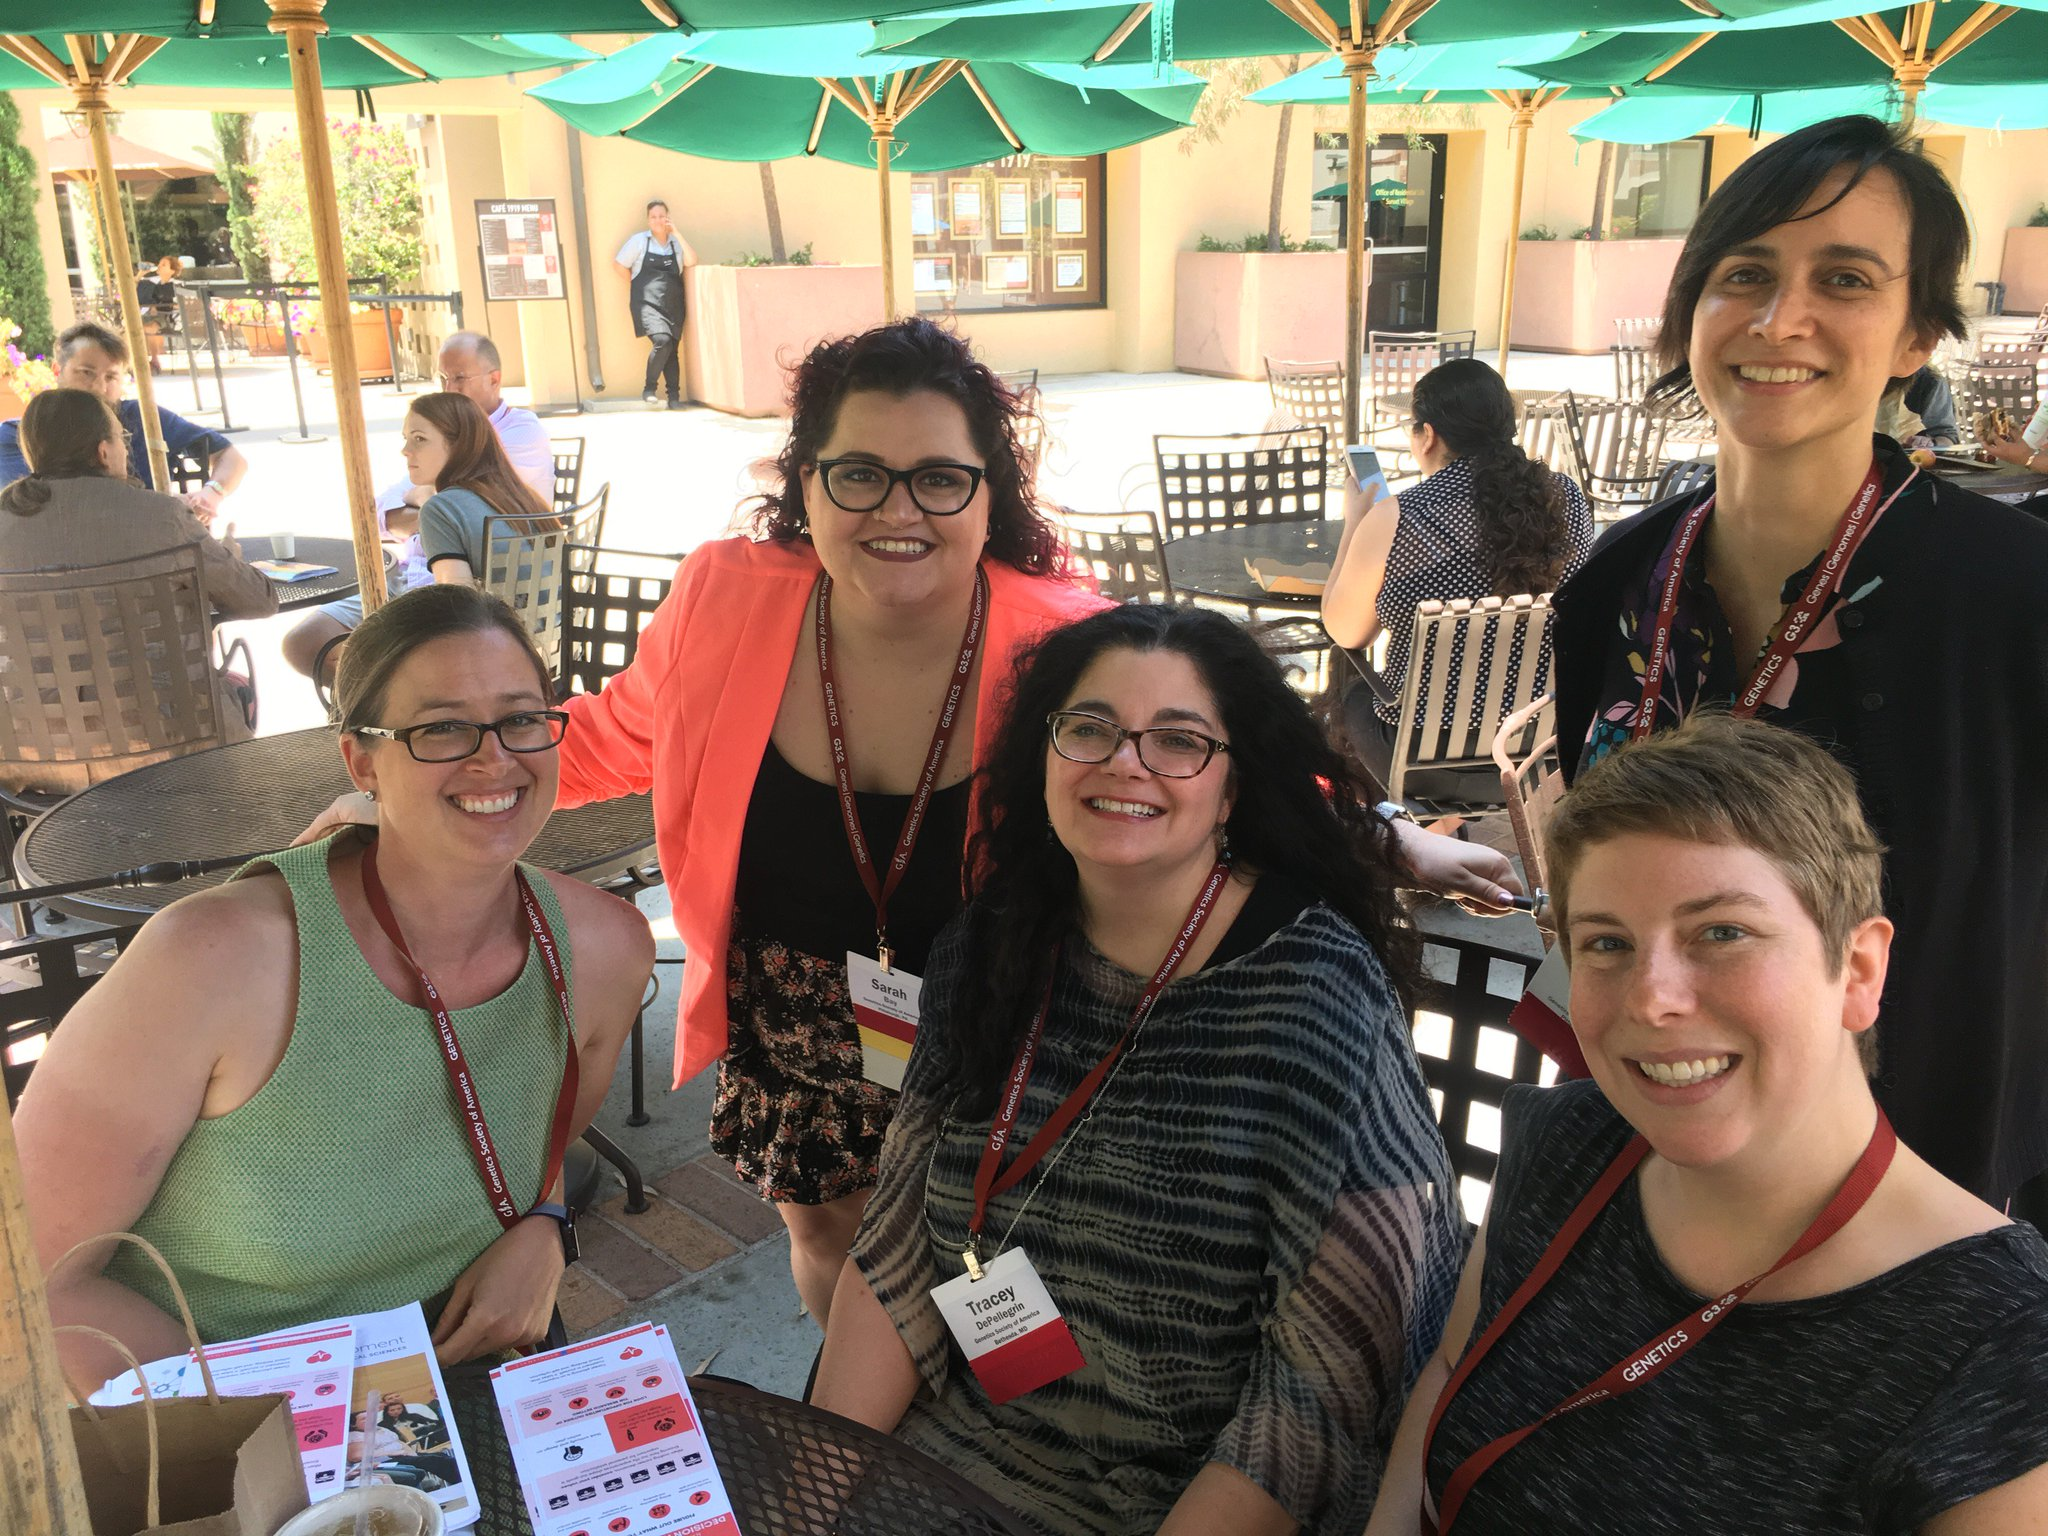 See us around #Worm17 today? Stop us and say hi! @editor_traceyd @CristyGelling @SoniaHall @_sbay and Ruth. 📸: @mjohn1251 https://t.co/LX65SnOW1n